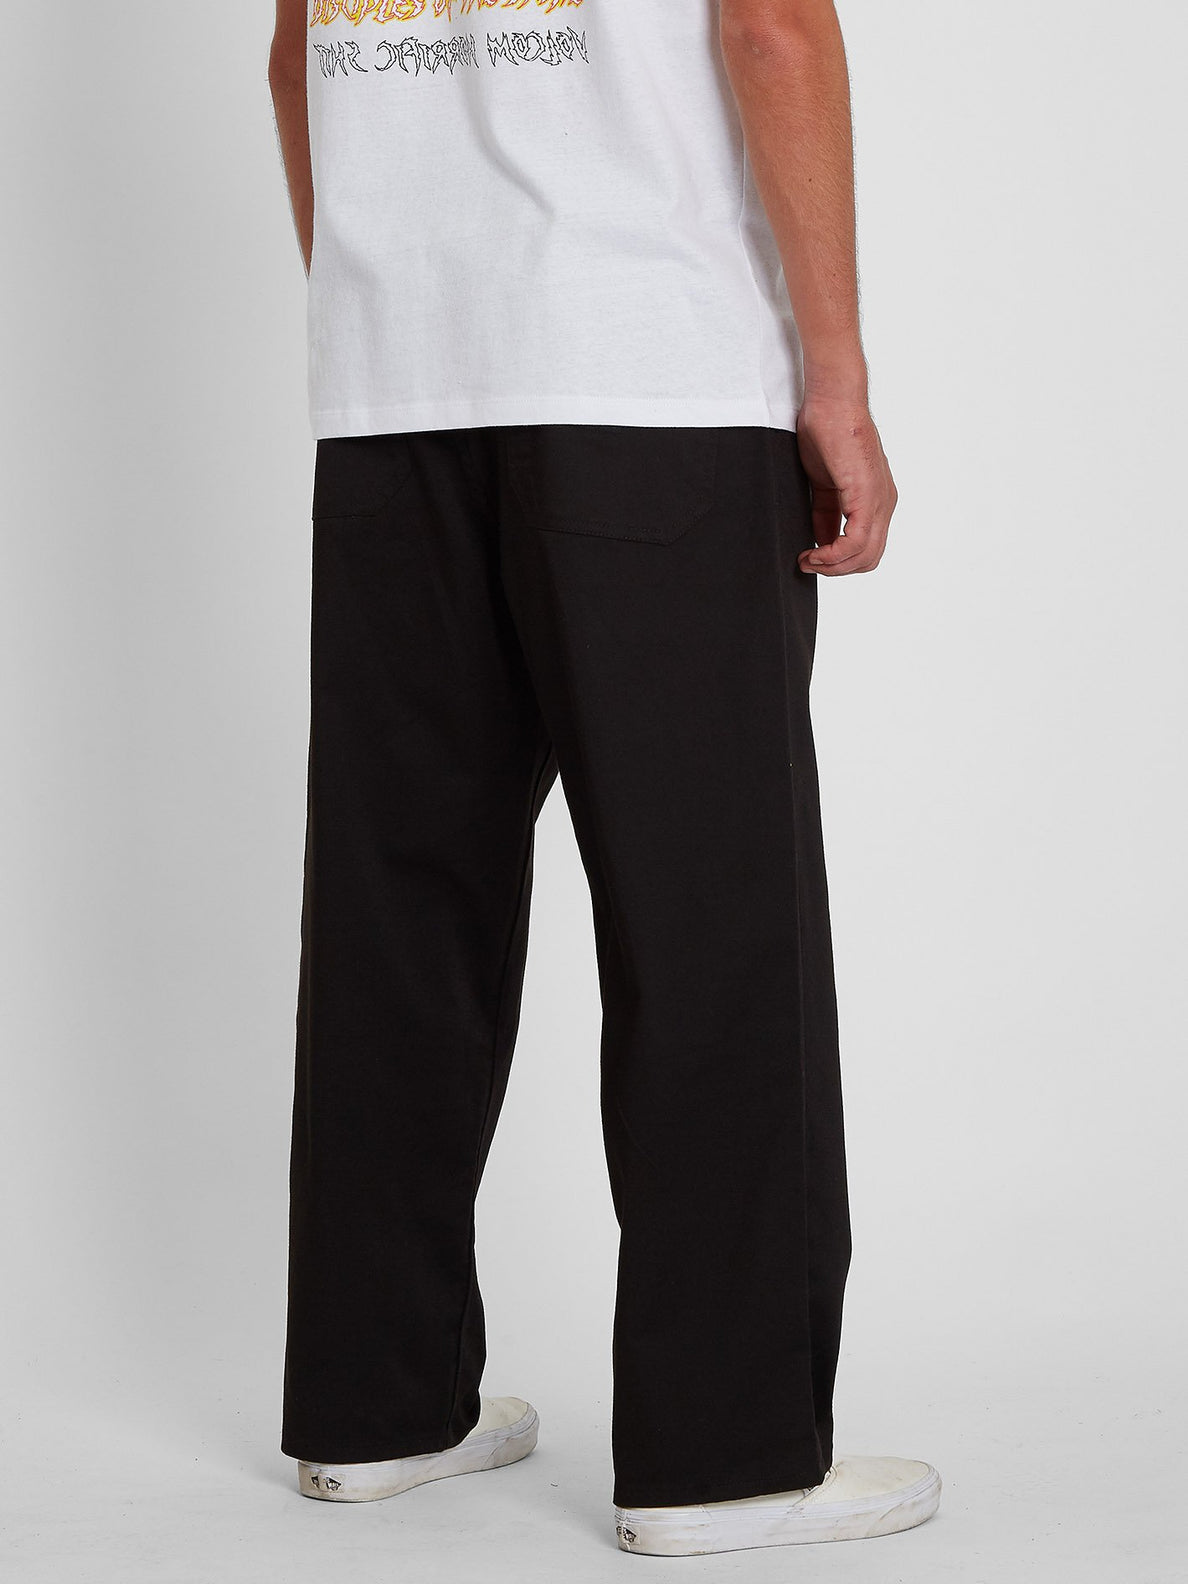 Outer Spaced Solid Pant - BLACK (A1242004_BLK) [2]